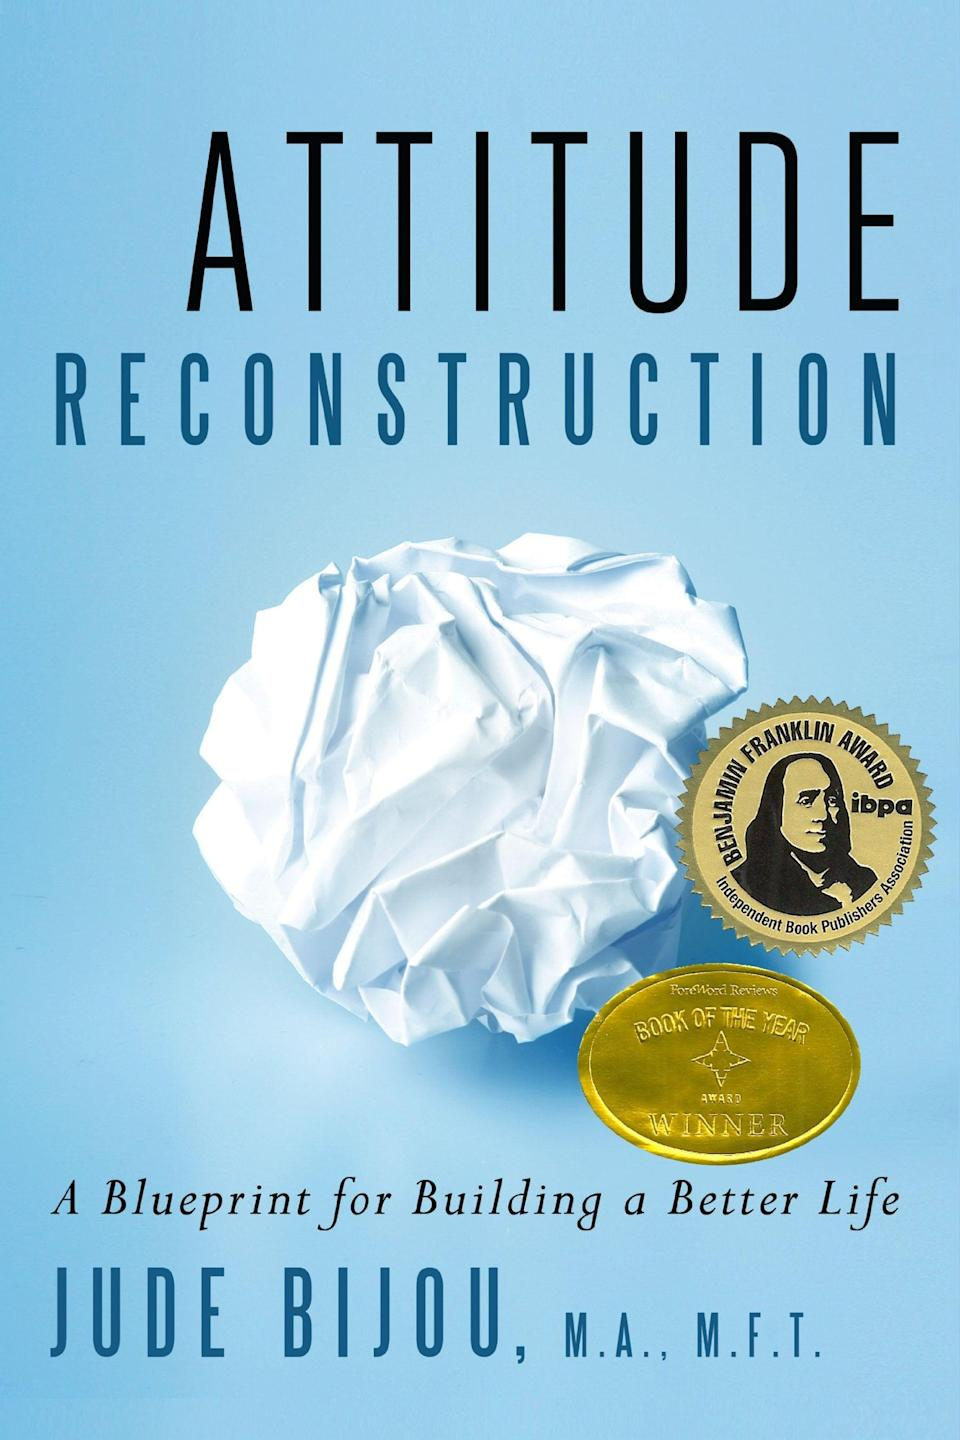 <p>Maybe you weren't aware that restructuring your outlook can actually transform your life. In <span>Attitude Reconstruction</span>, author Jude Bijou, MA, teaches you how to change your perspective by combining contemporary psychology with ancient spiritual wisdom. </p>